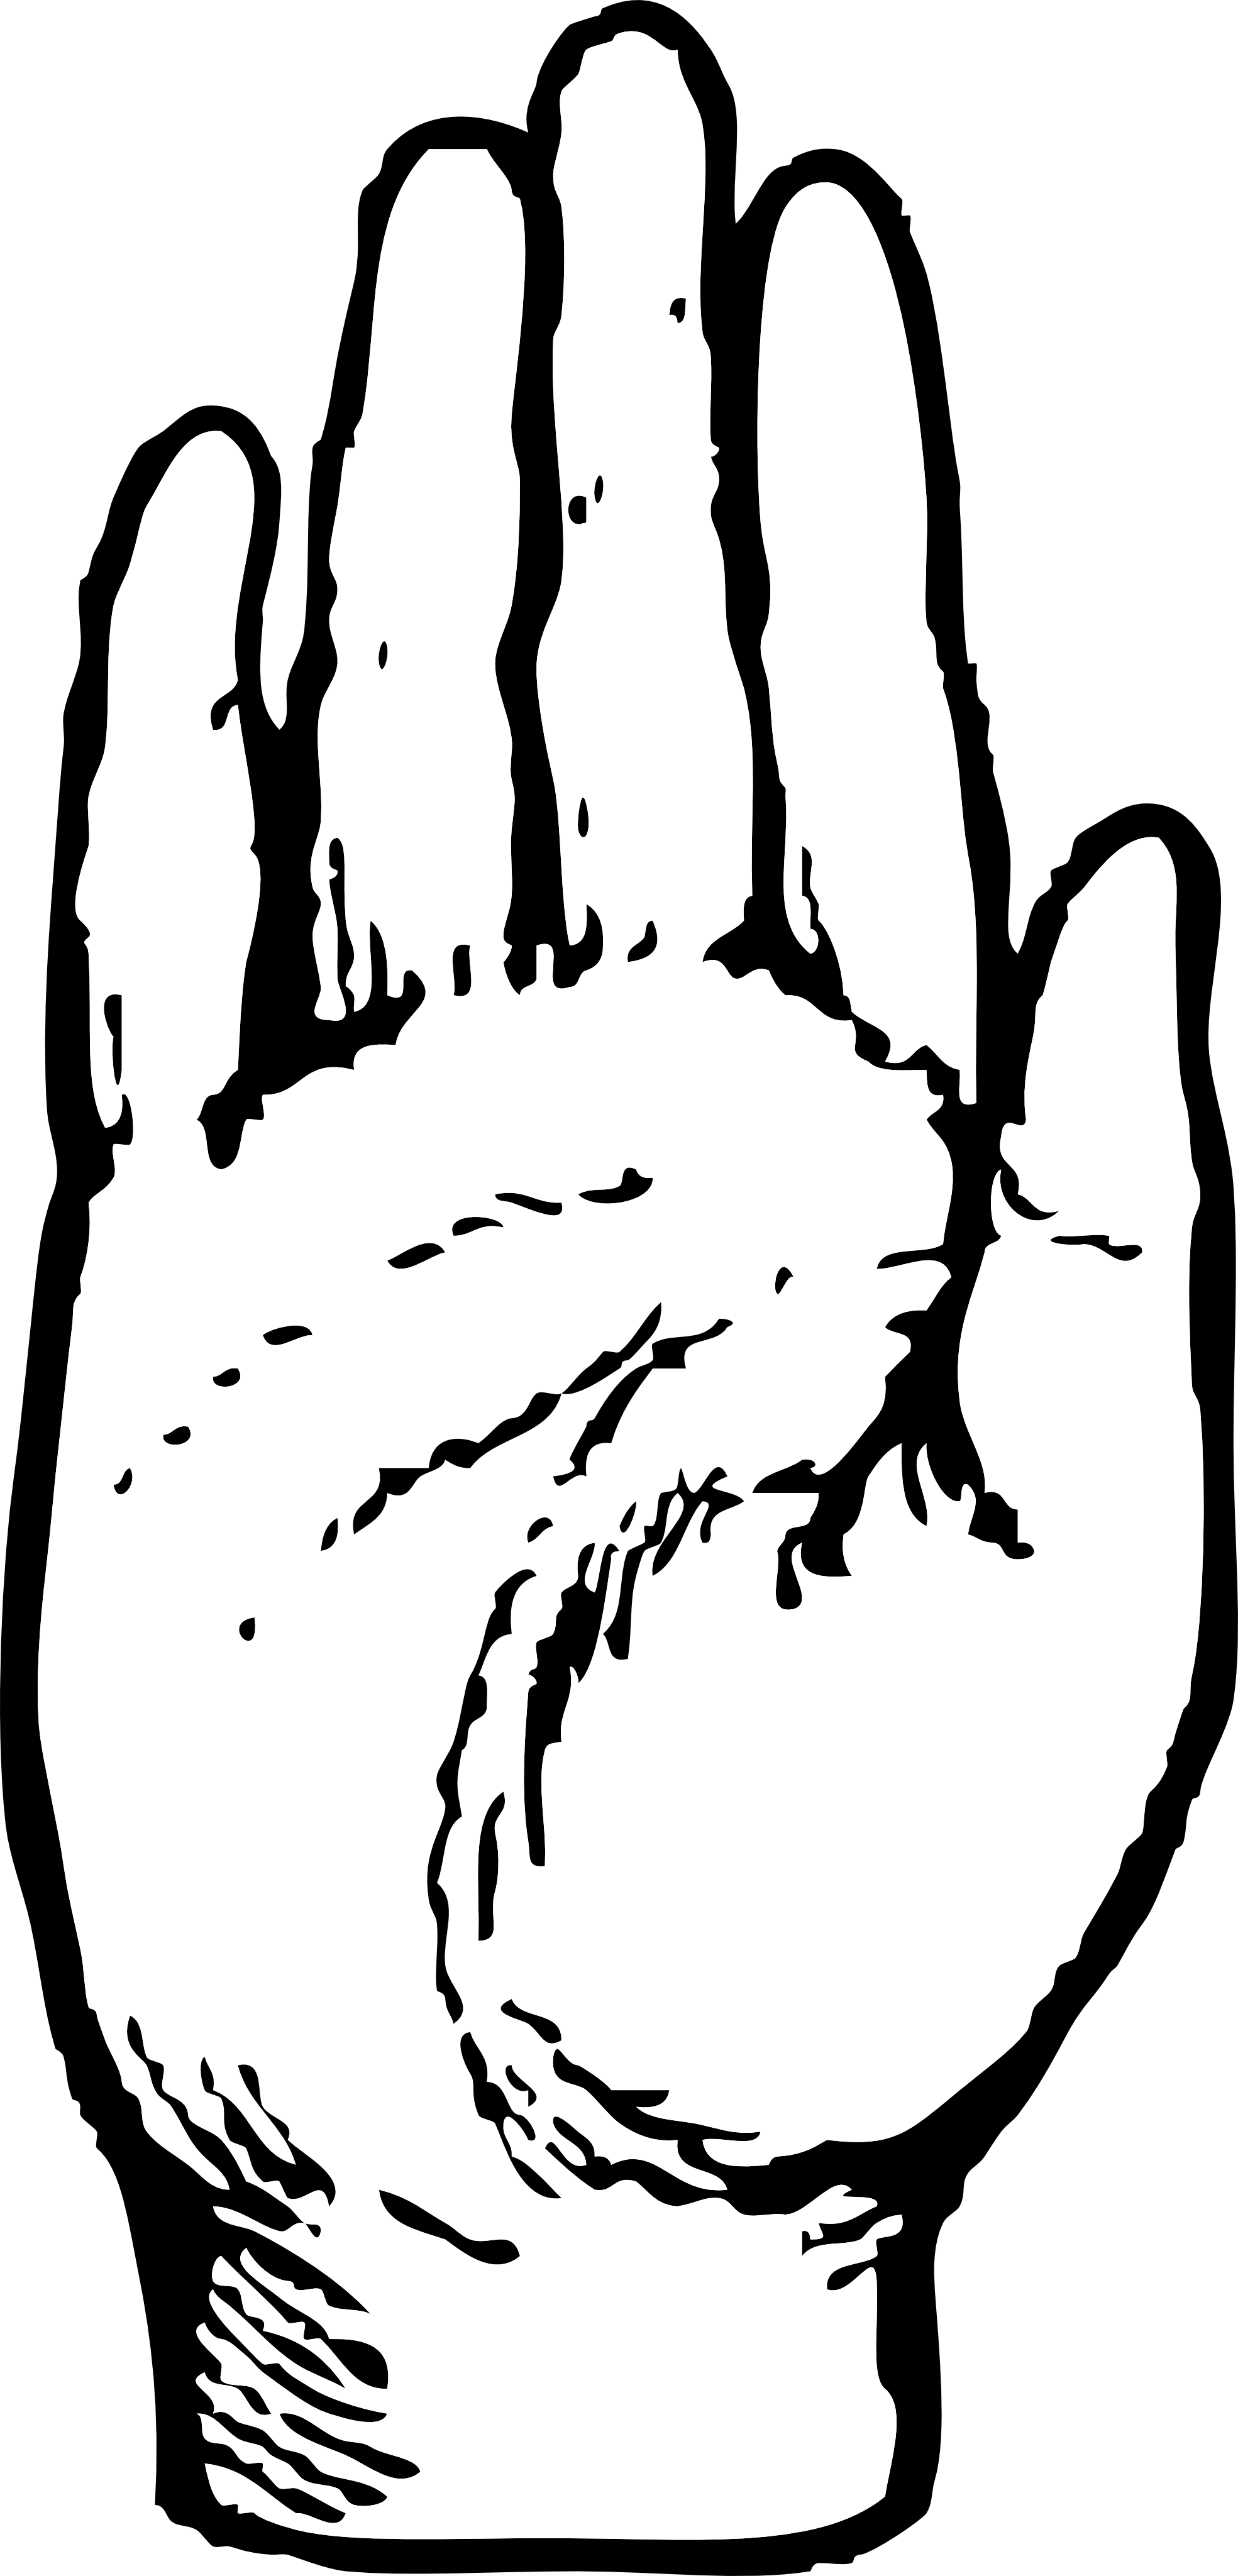 Two Hands Clipart Black And White | Clipart Panda - Free ...